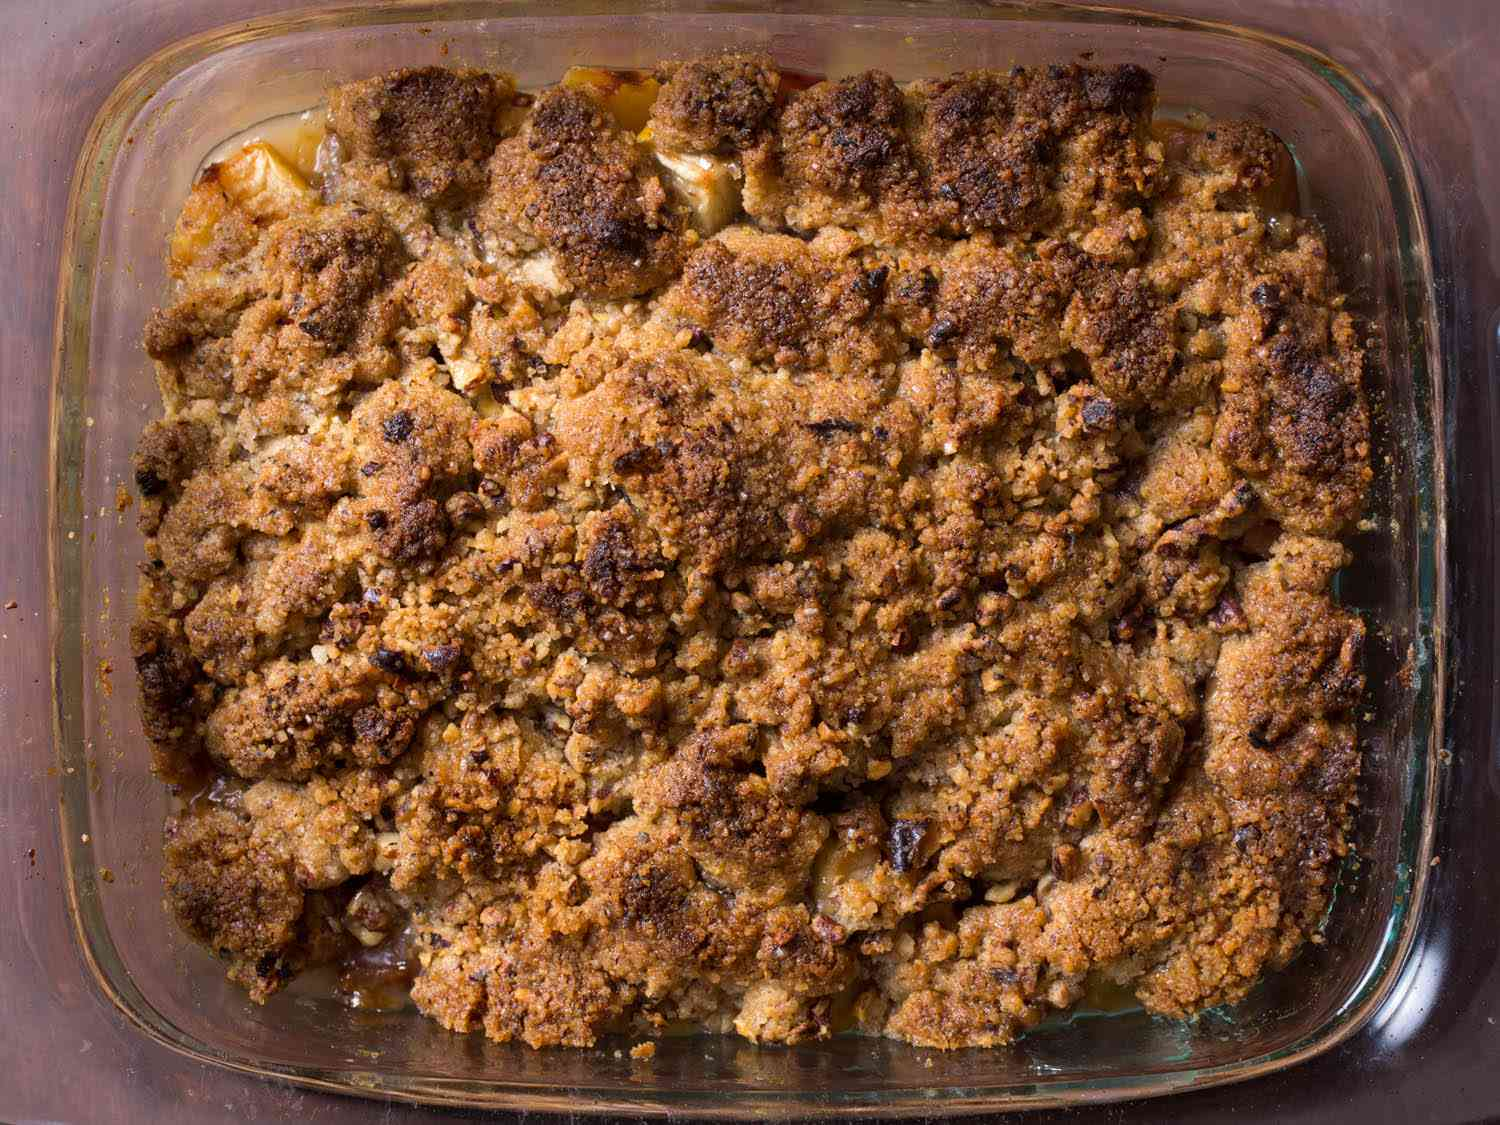 Overhead shot of a baked apple crisp, with a well-browned crumb topping